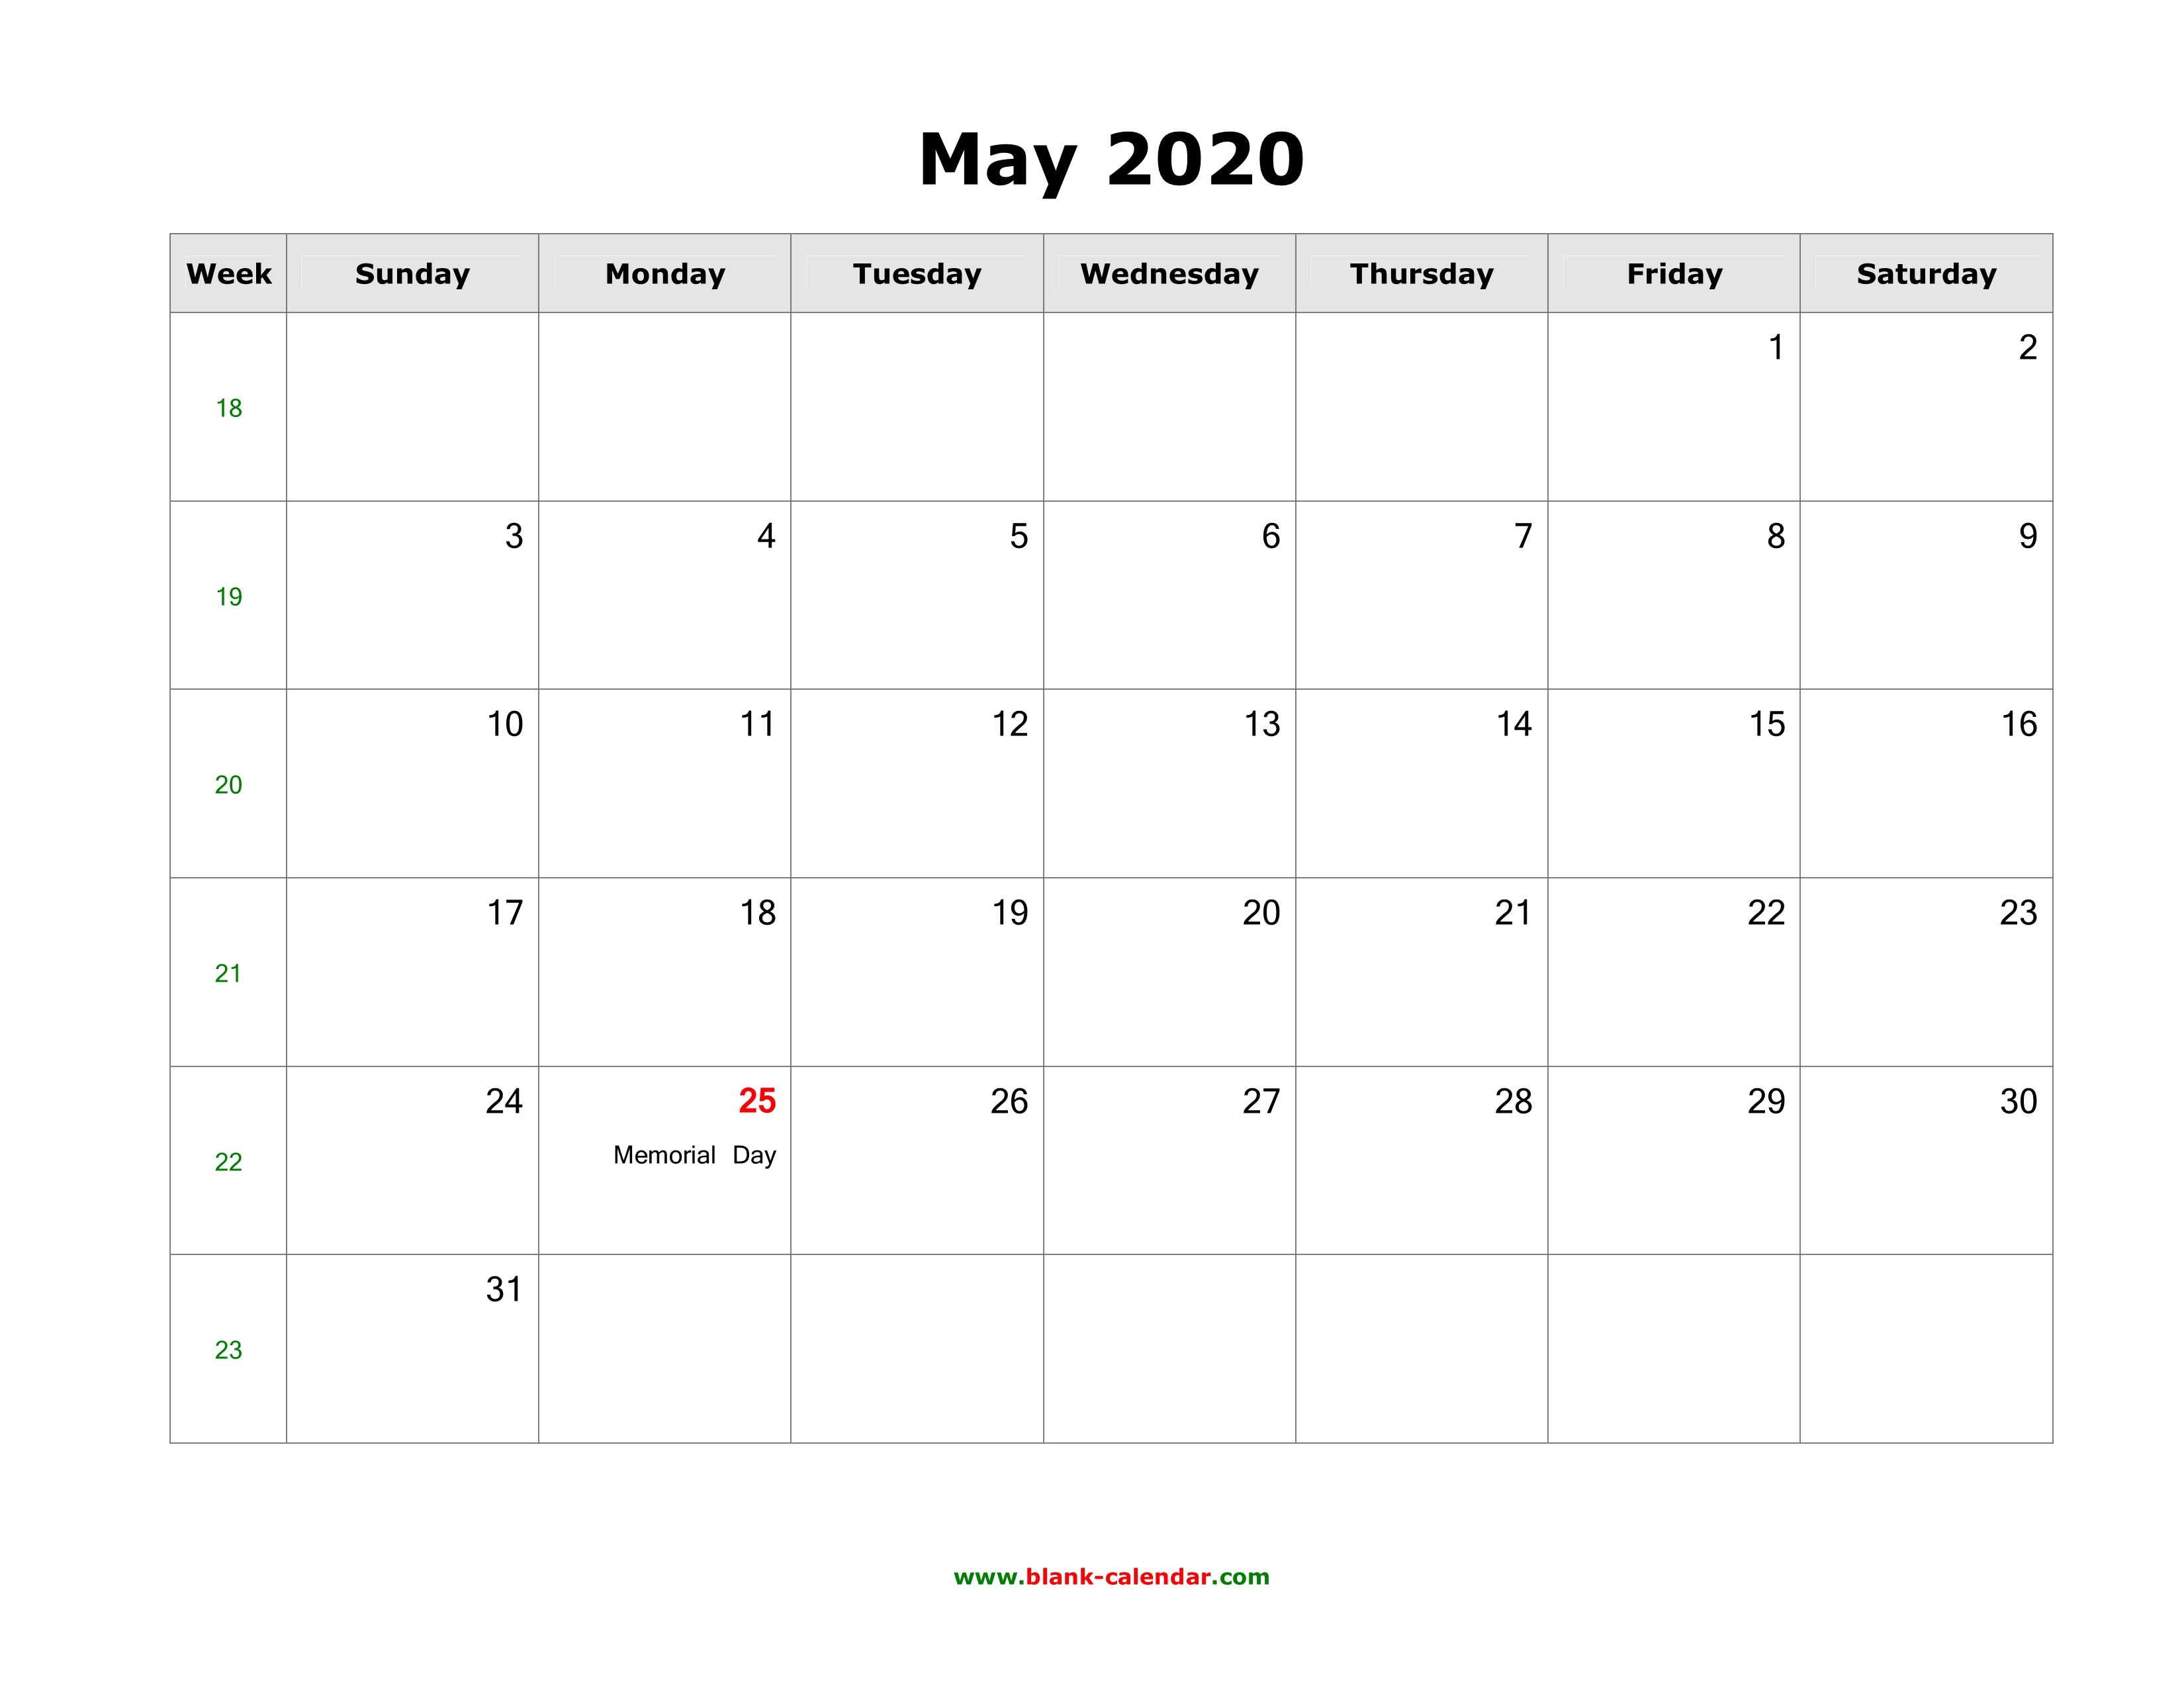 May 40 Blank Calendar   Free Download Calendar Templates